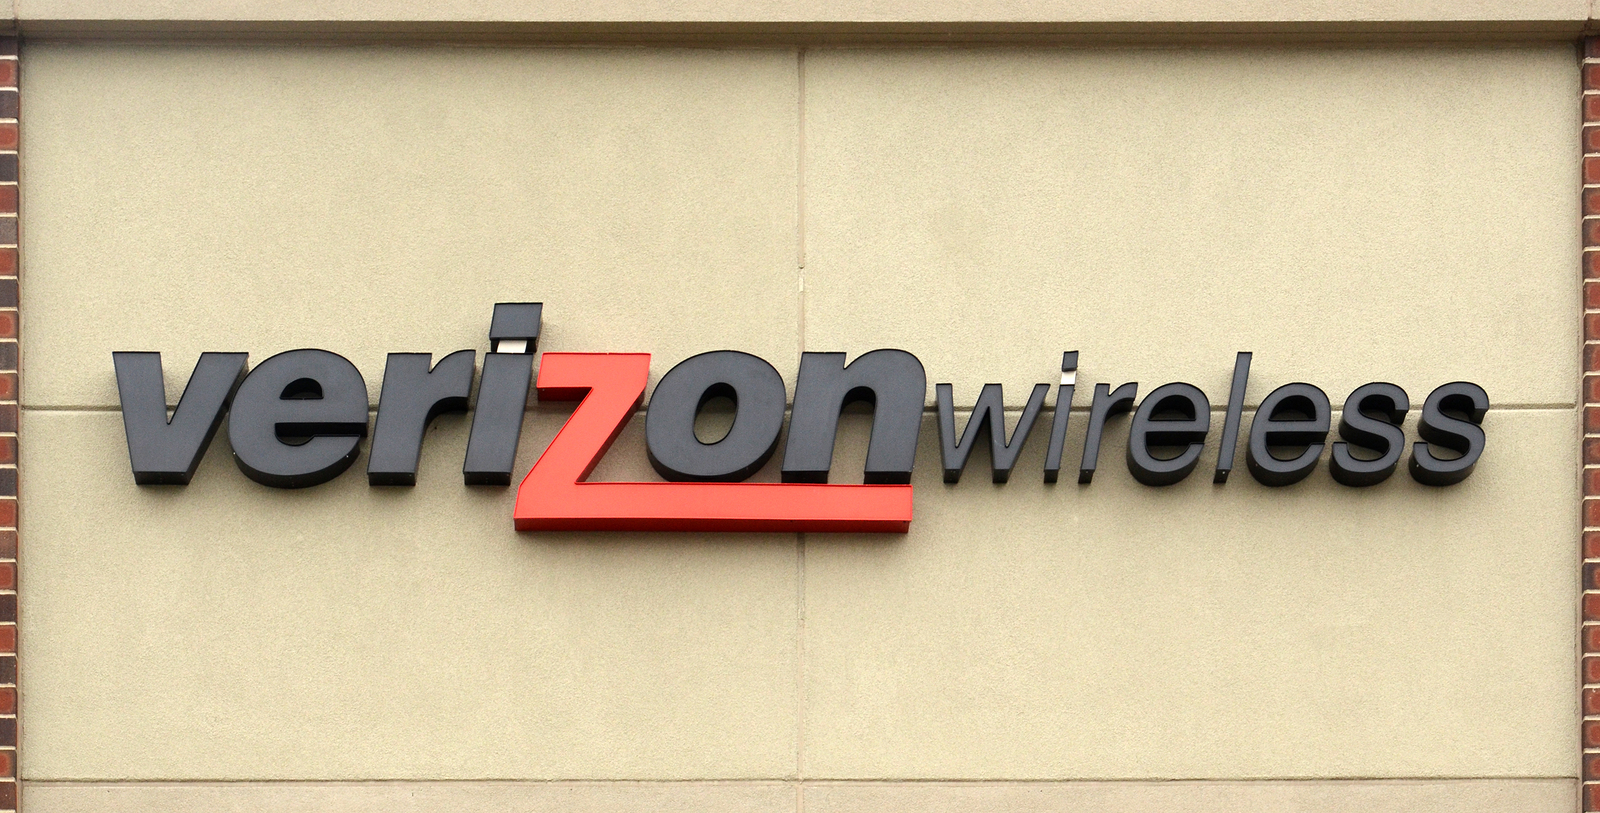 Fcc fines verizon more than 1 million for violating consumers fcc fines verizon more than 1 million for violating consumers privacy insidesources biocorpaavc Image collections